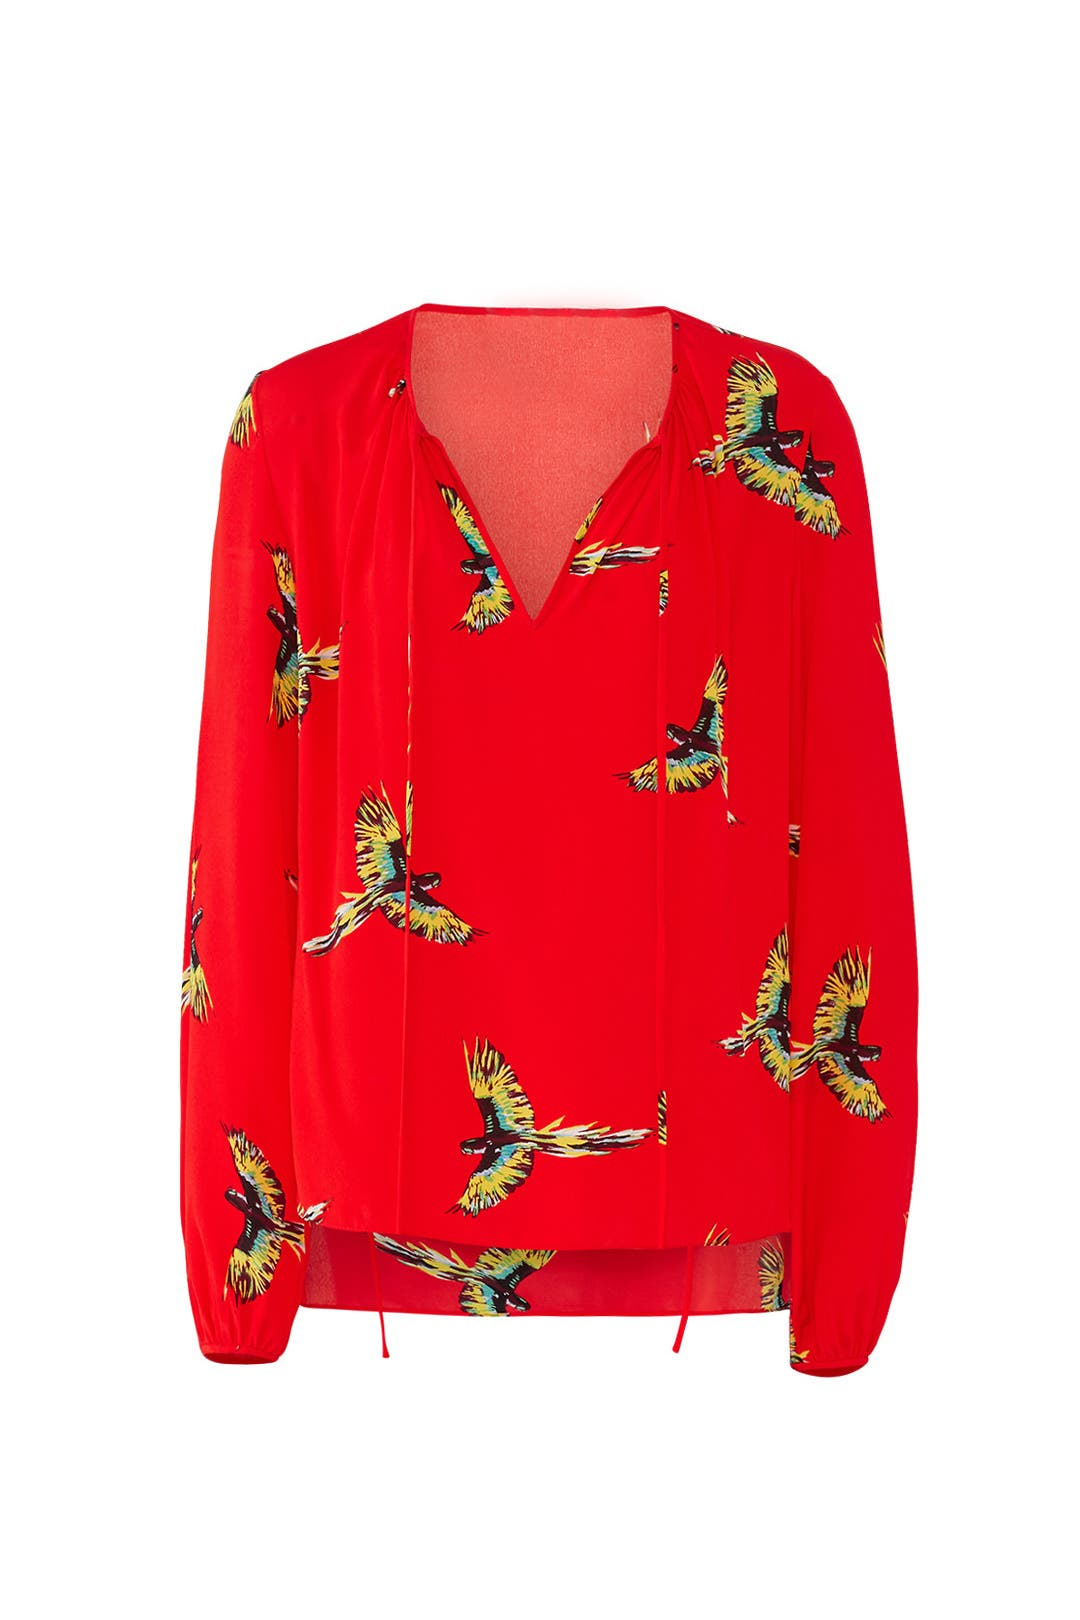 87249d2f5aa40 Diane von Furstenberg. Read Reviews. Red Keyhole Blouse